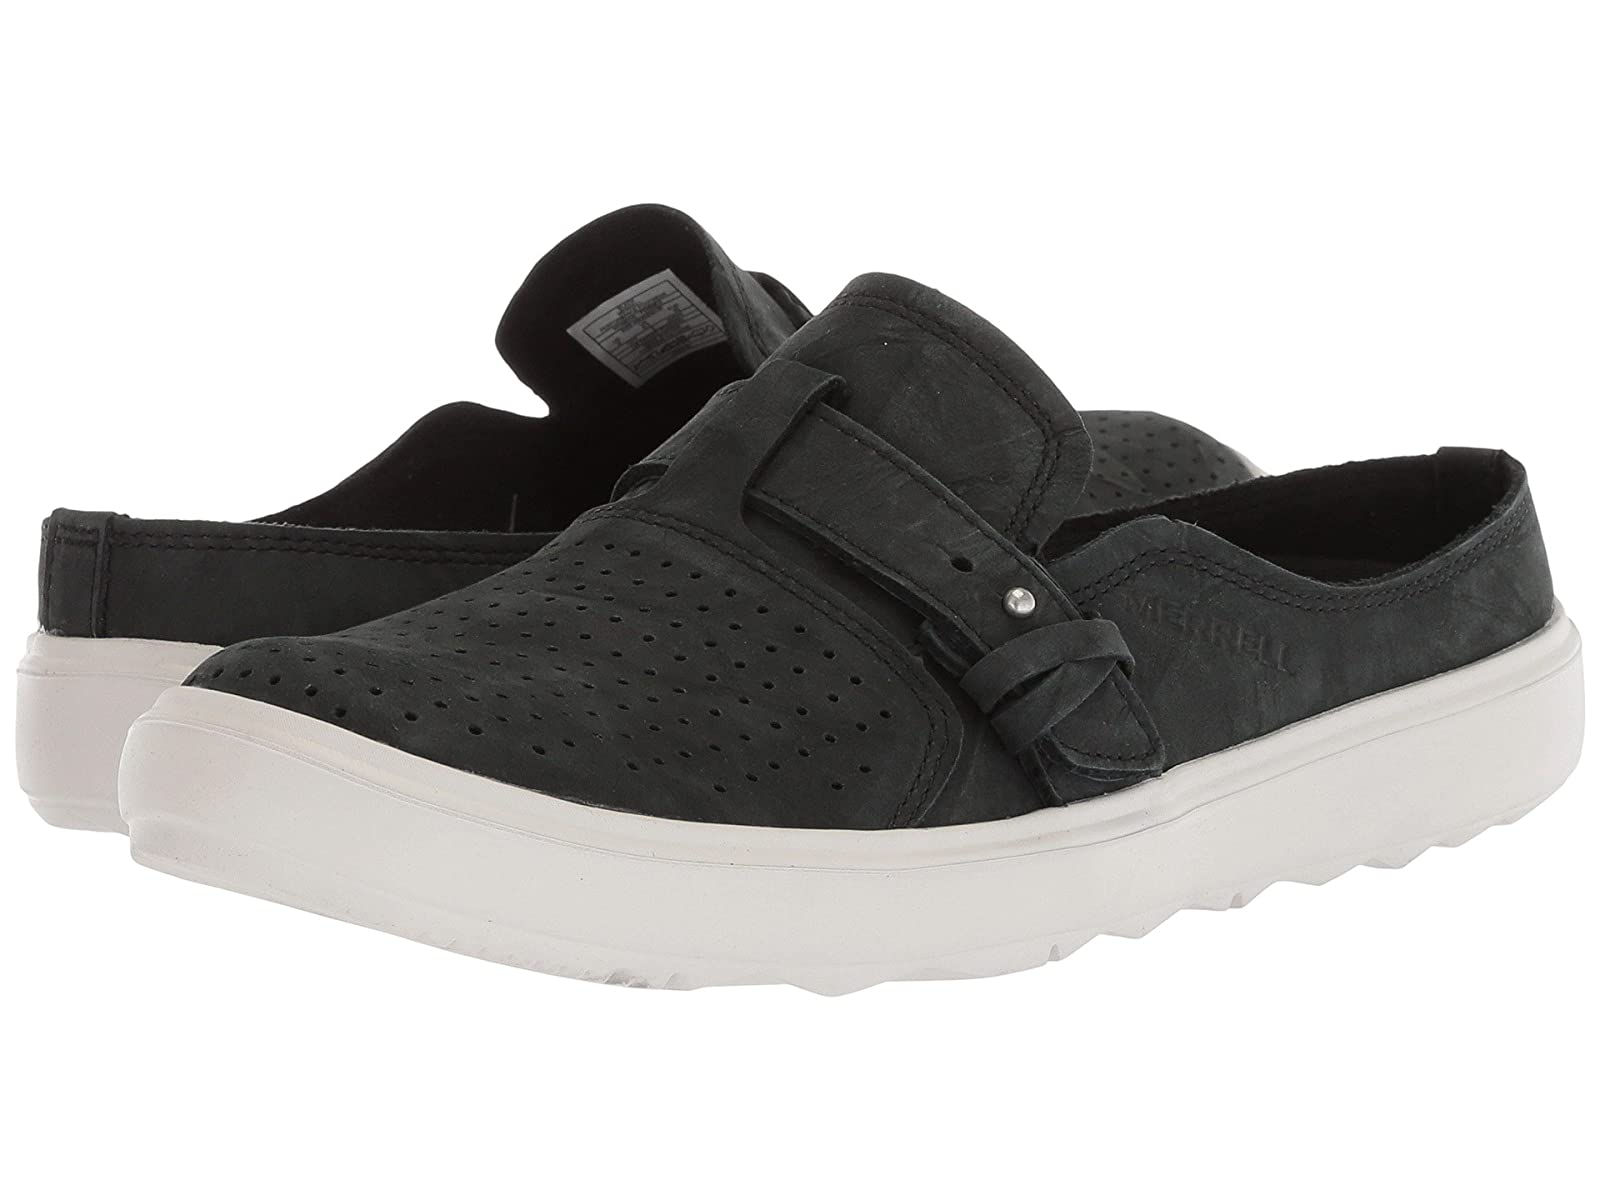 Merrell Around Town City Slip-On AirCheap and distinctive eye-catching shoes